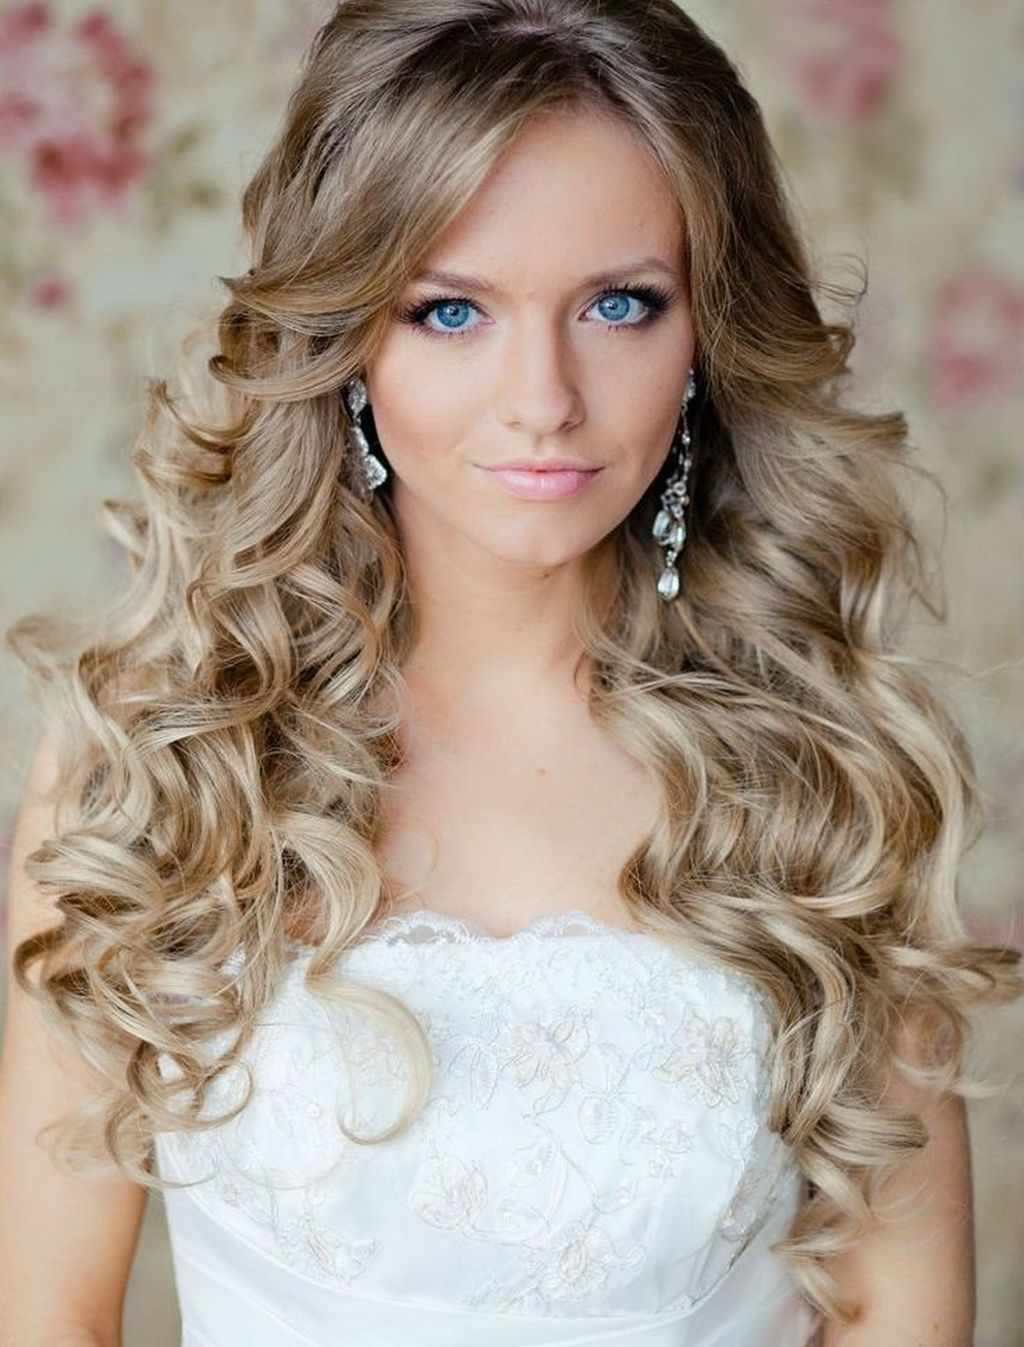 Stupendous Wedding Hairstyles For Long Hair Images Photos Pictures Short Hairstyles Gunalazisus